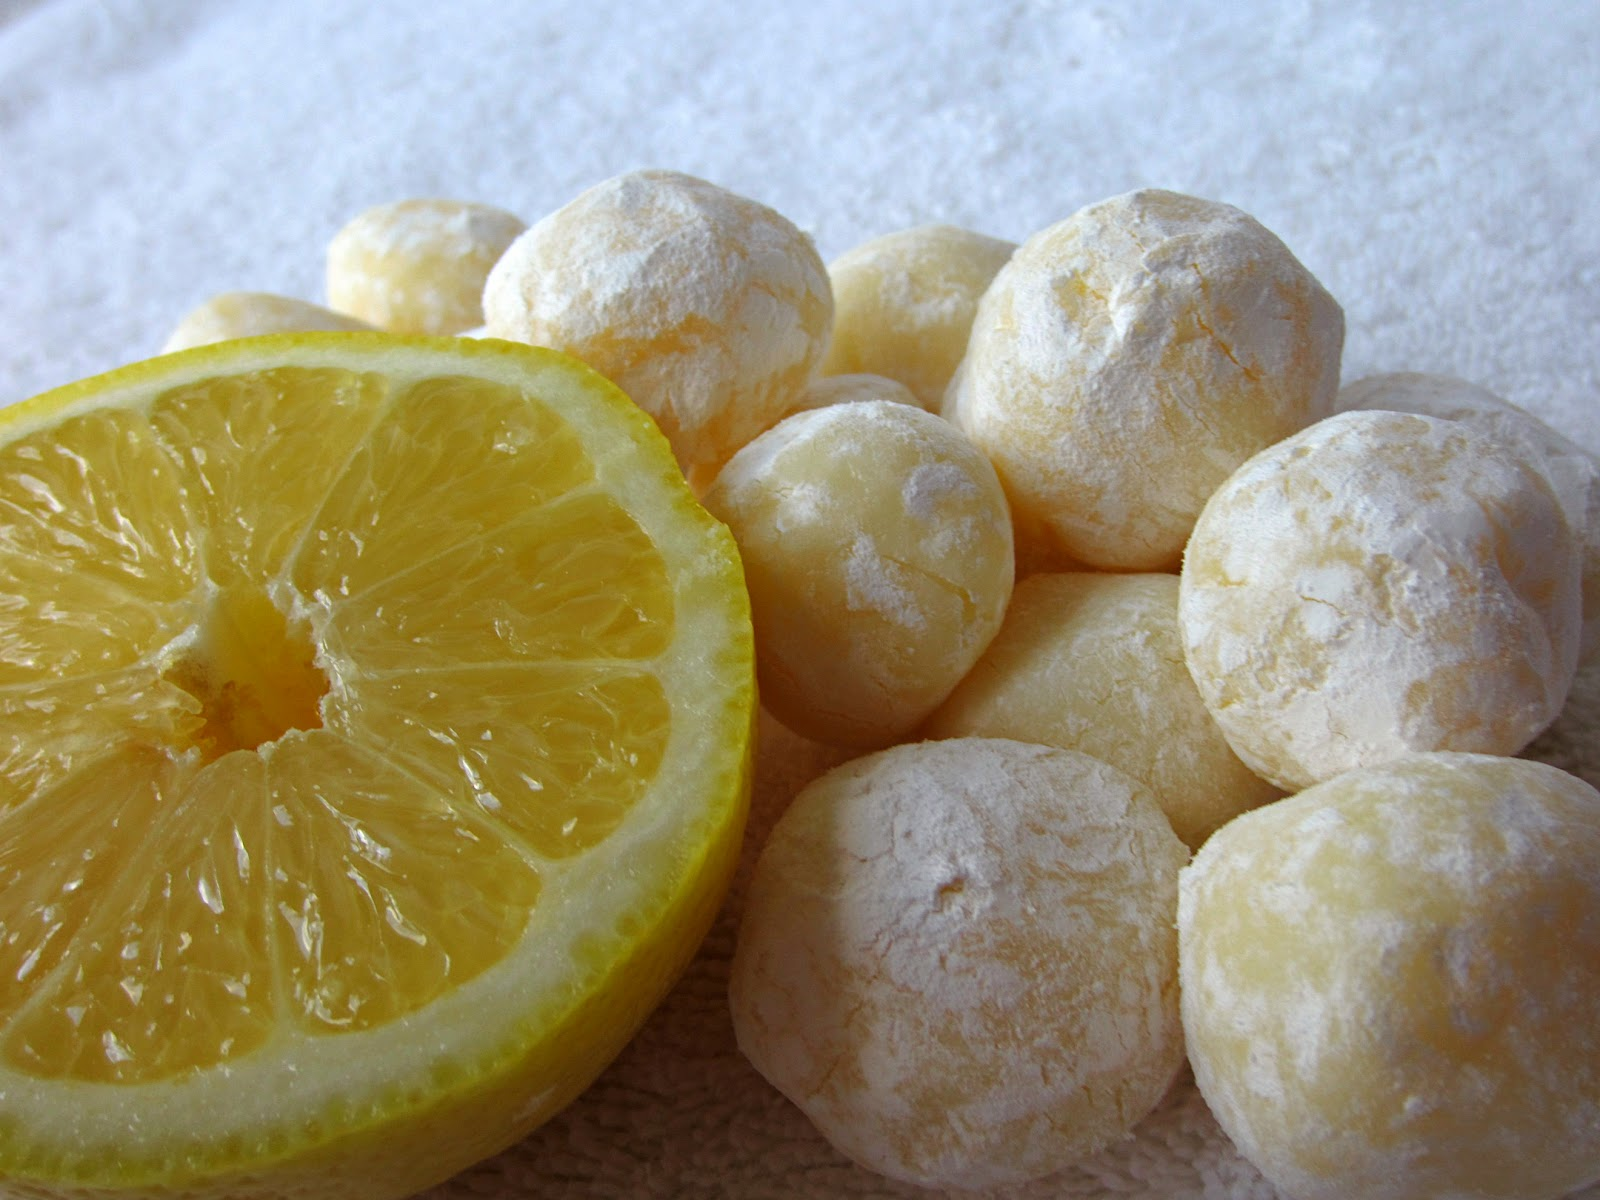 Sugarcoated White Chocolate Lemon Truffles